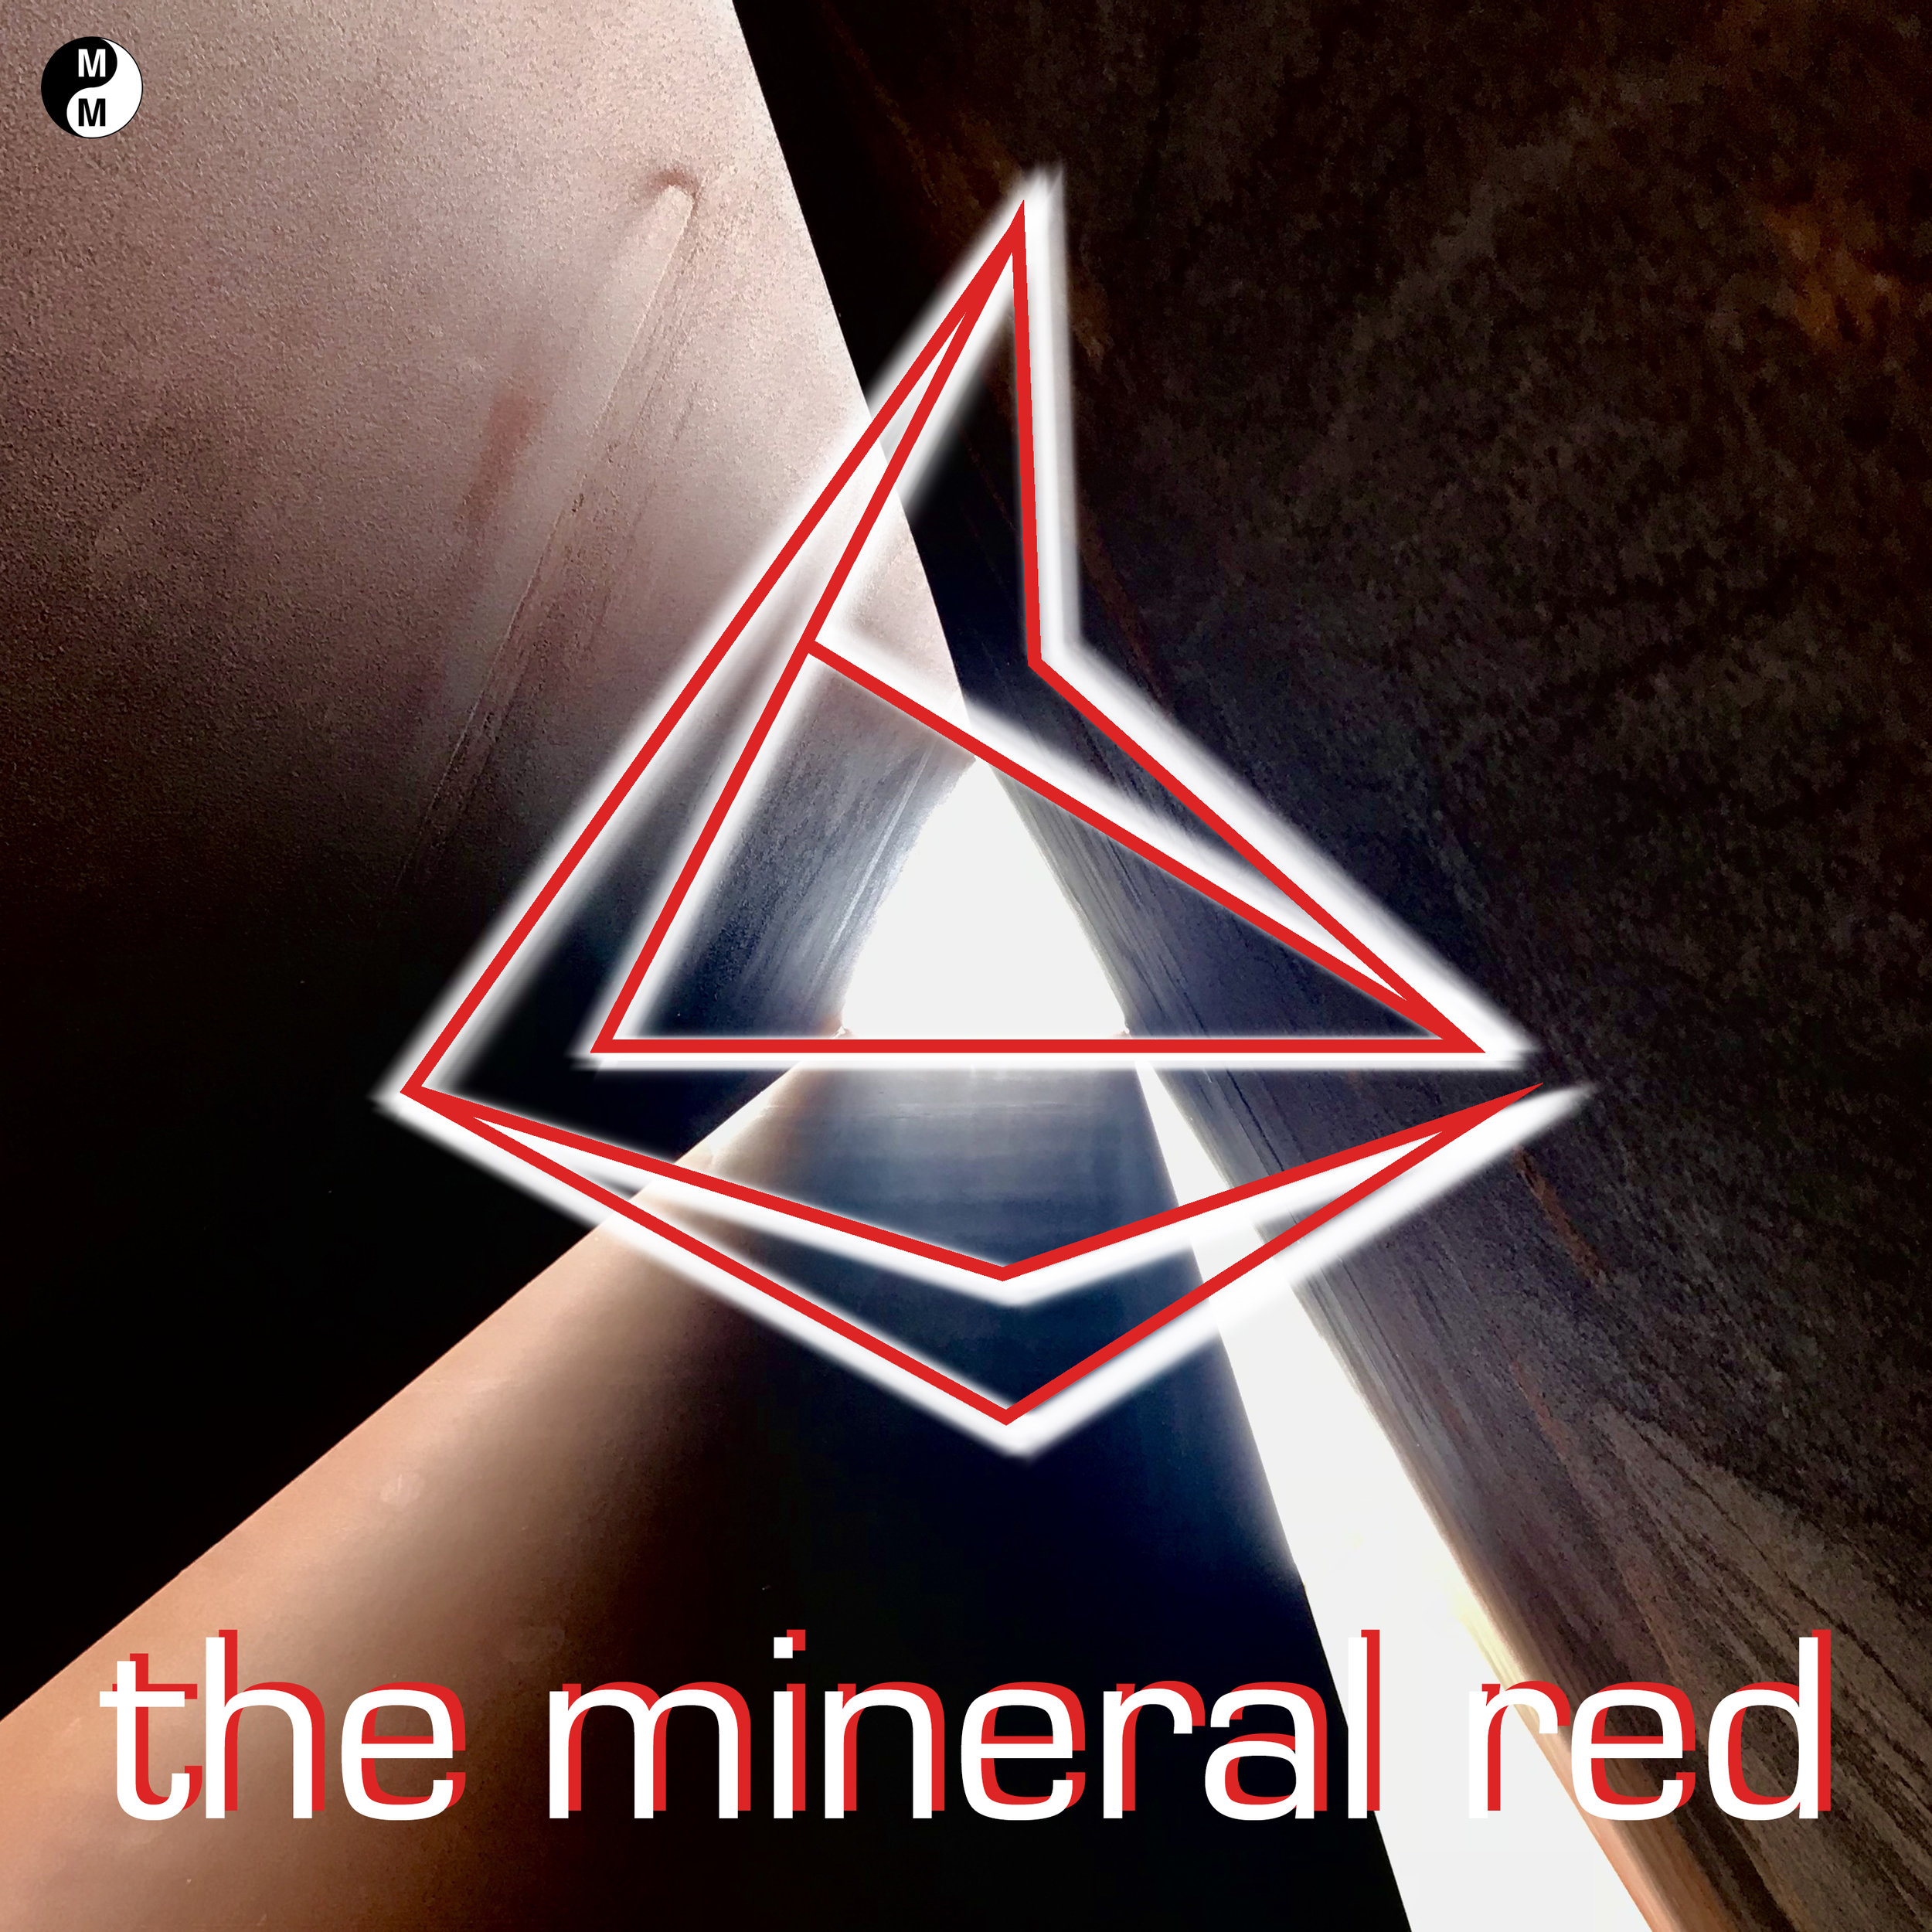 The Mineral Red - Robert Musso and Mark Daterman